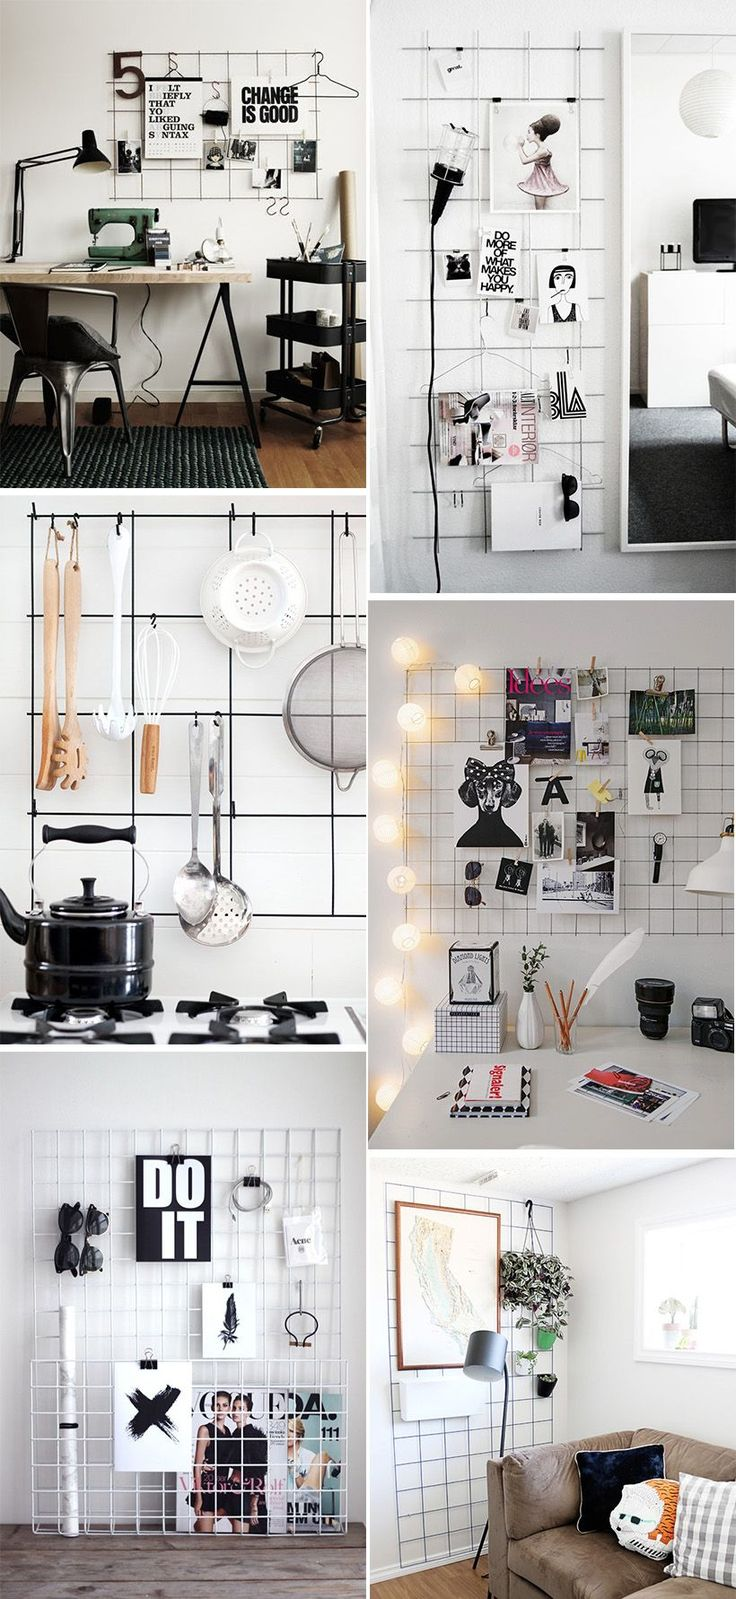 Best 25+ Diy wall ideas on Pinterest | DIY art projects, Hexagon ...